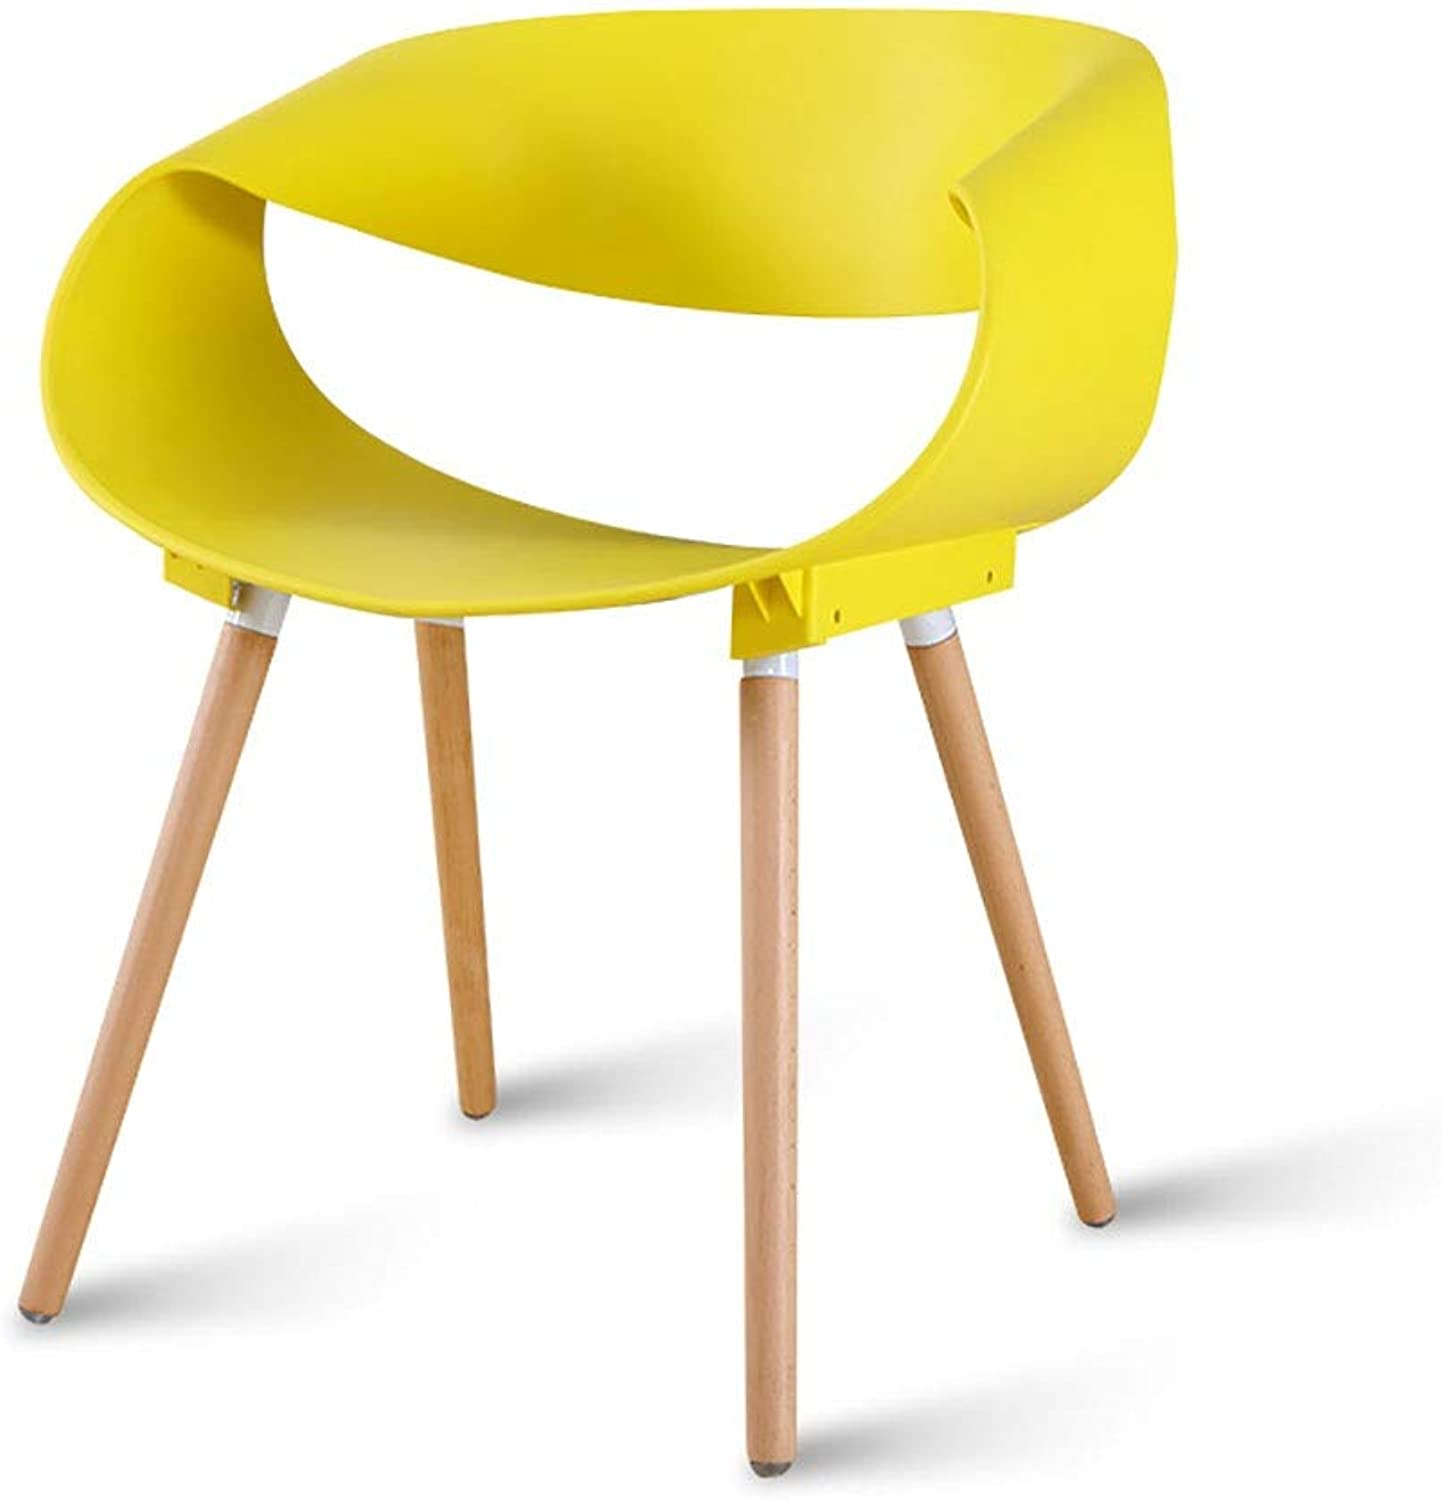 Home Desk Chair Restaurant Creative Lounge Chair Modern Simple Plastic Stool Backrest Chair Adult (color   Yellow)